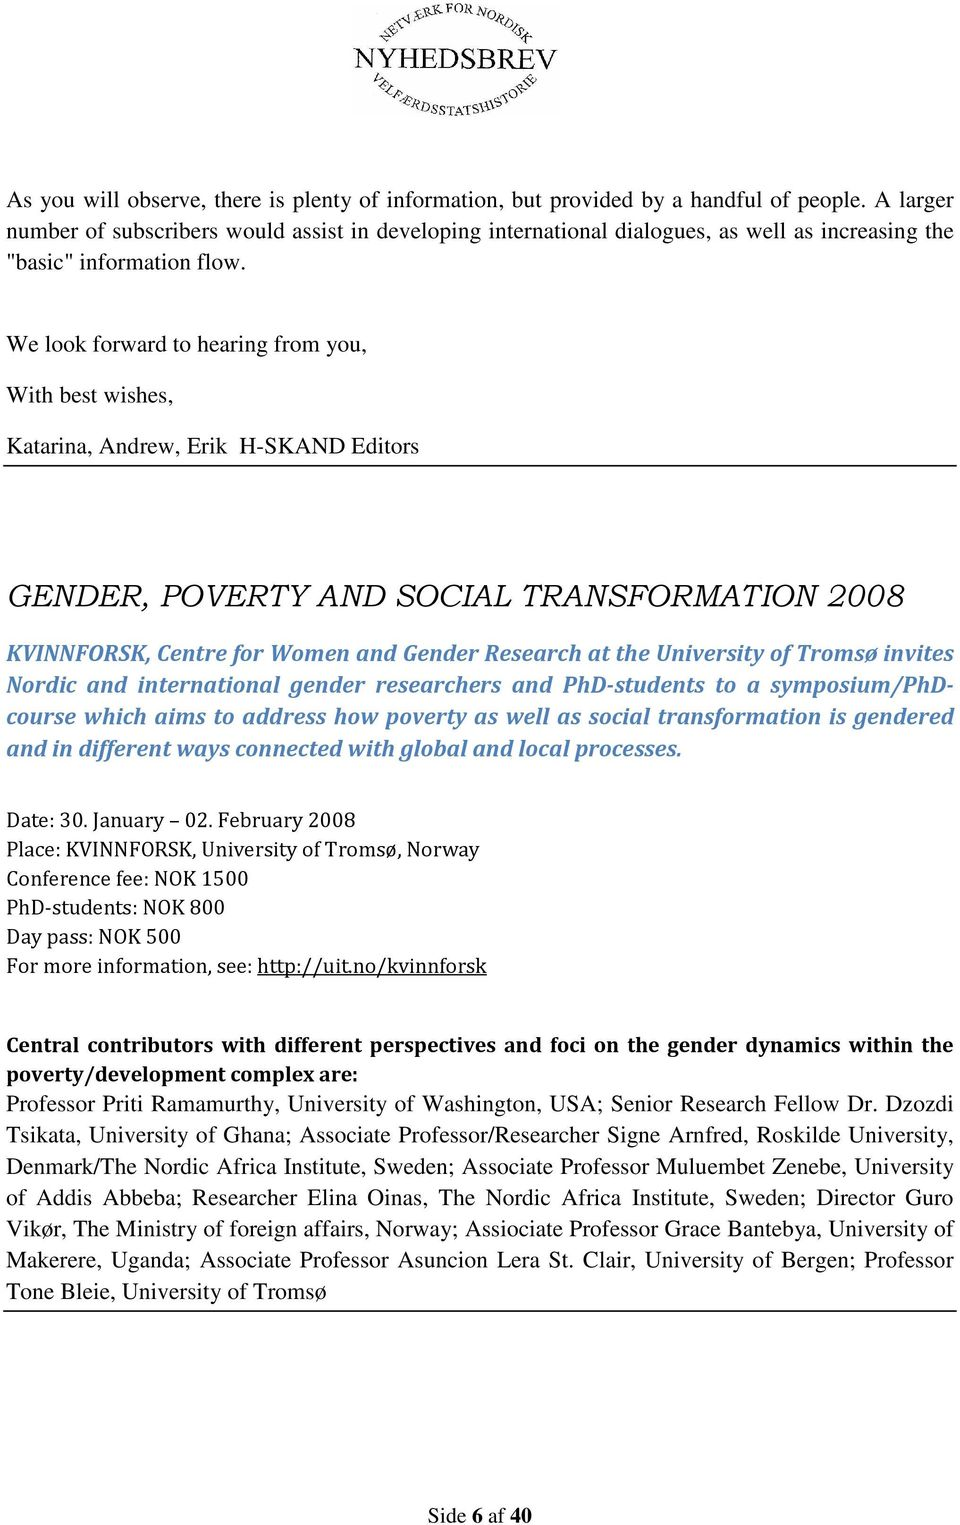 We look forward to hearing from you, With best wishes, Katarina, Andrew, Erik H-SKAND Editors GENDER, POVERTY AND SOCIAL TRANSFORMATION 2008 KVINNFORSK, Centre for Women and Gender Research at the